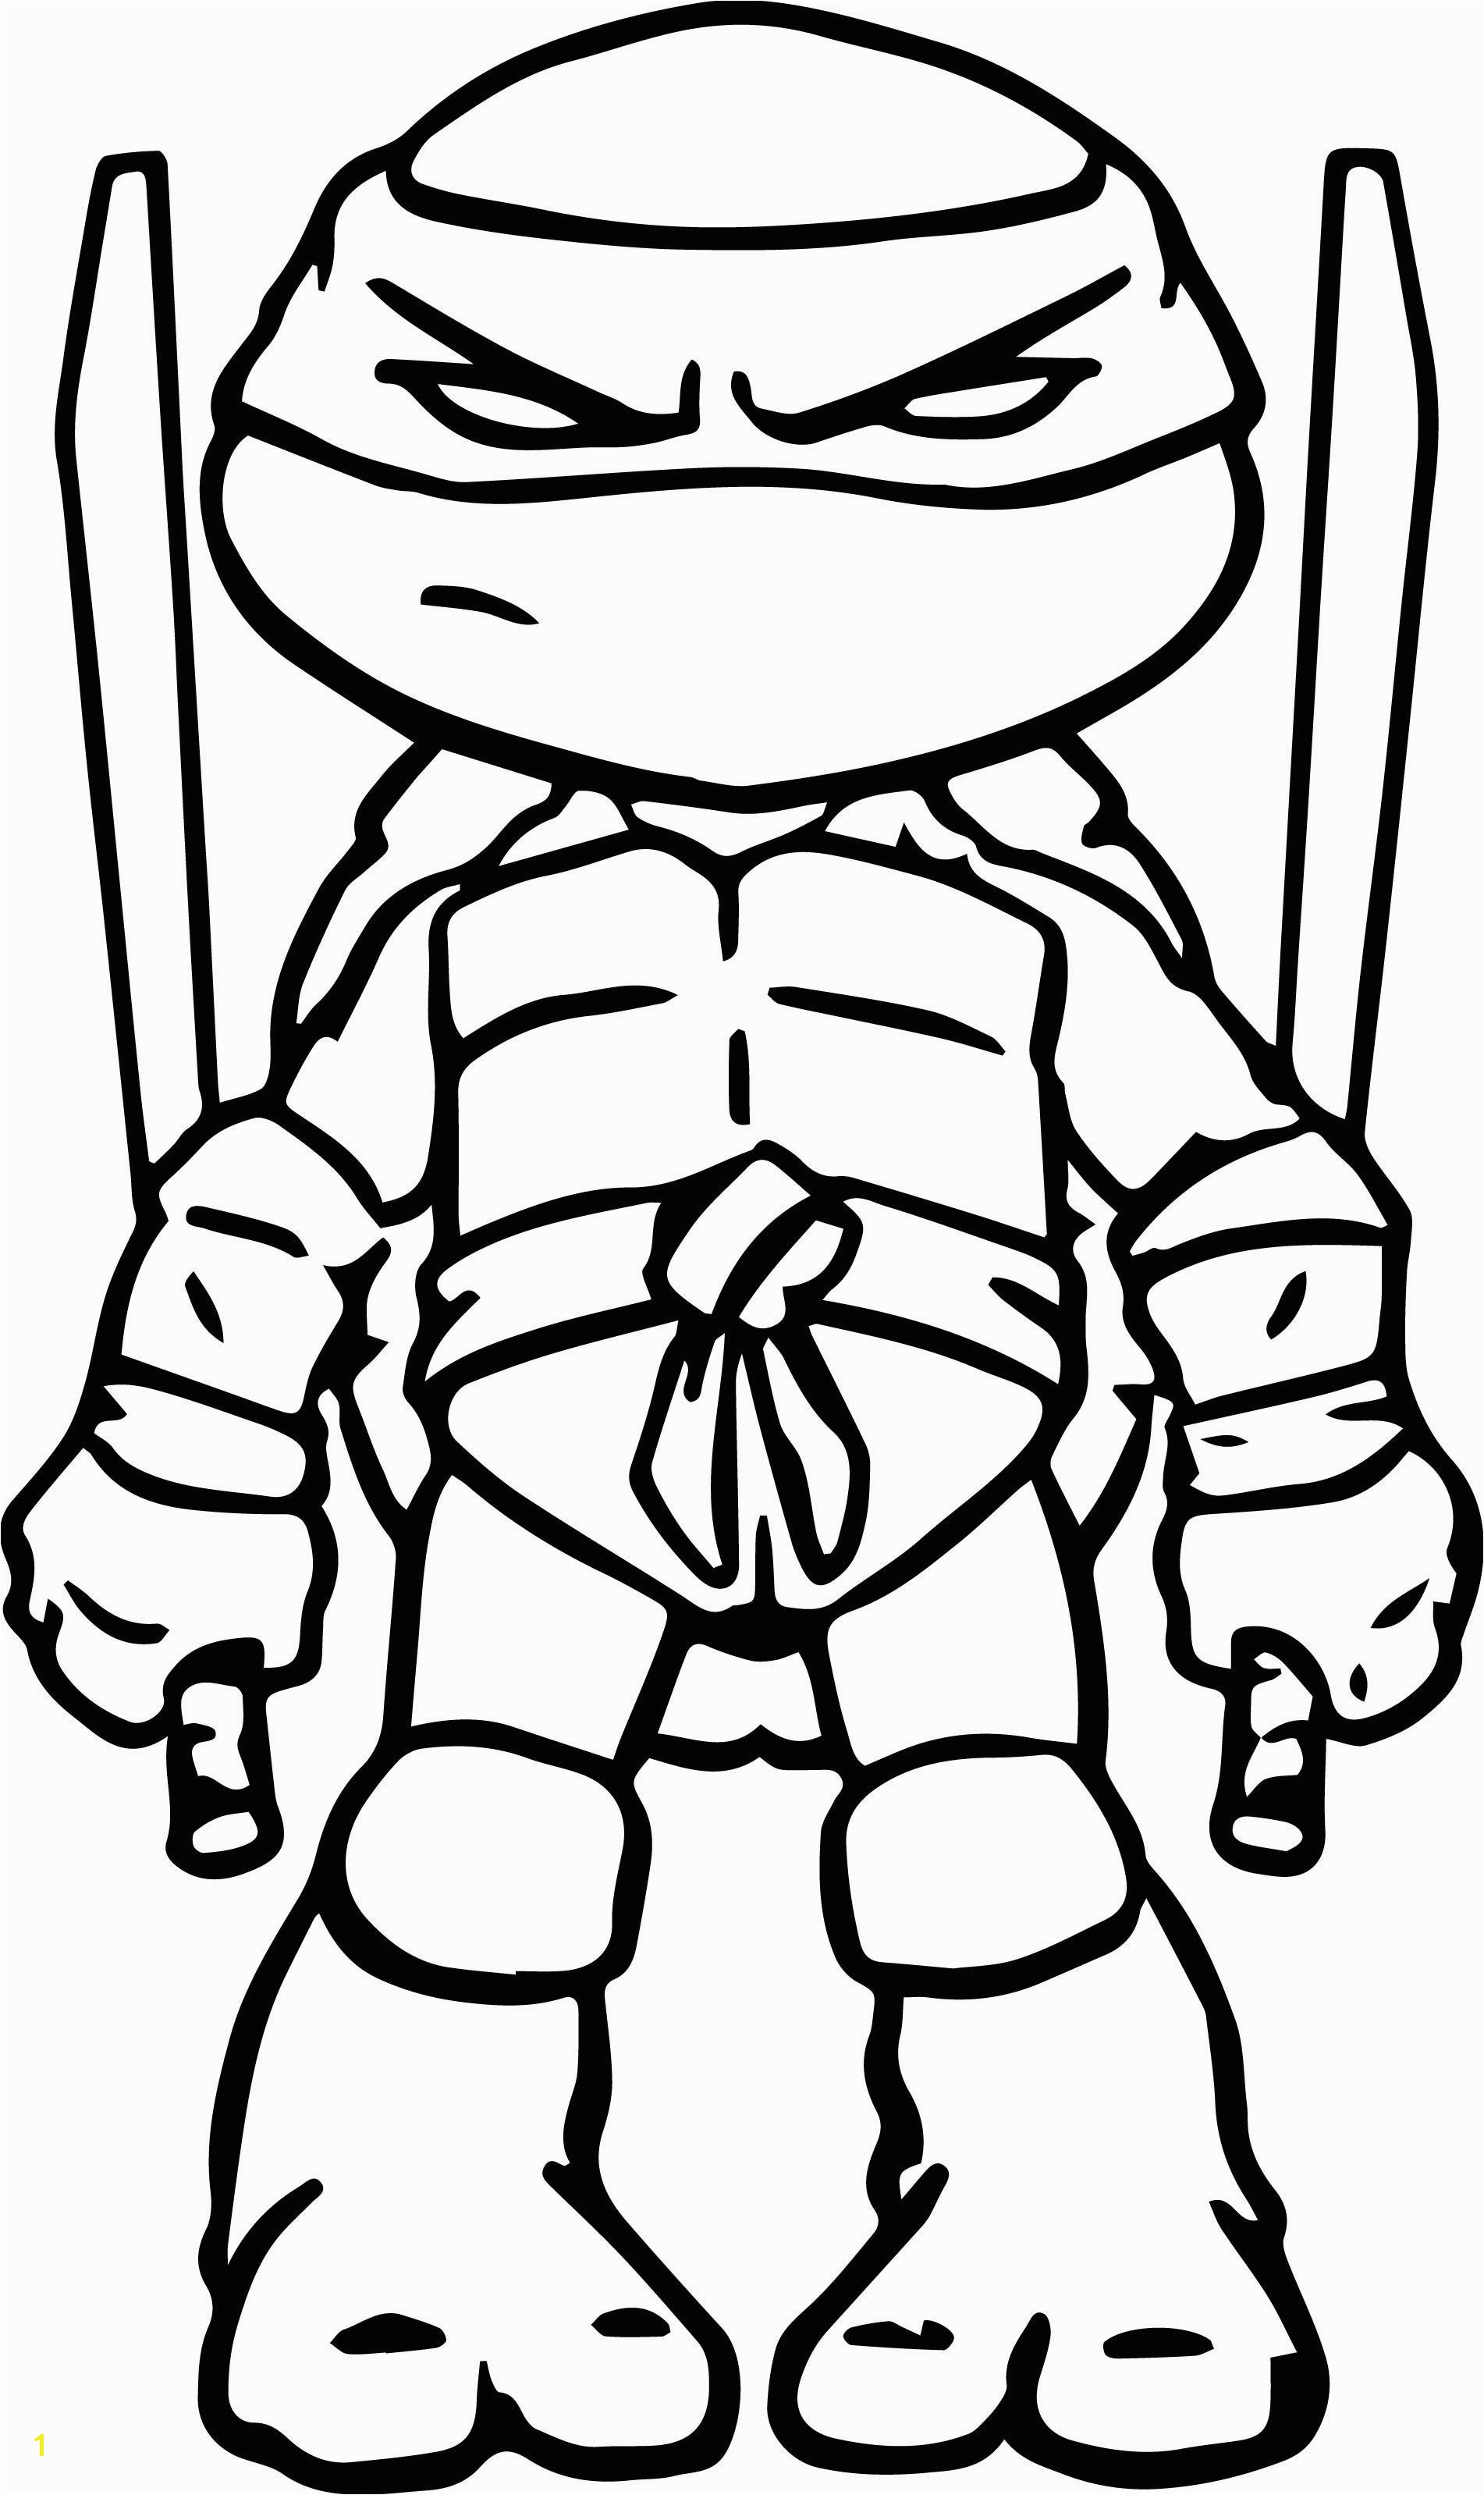 Free Ninja Turtle Coloring Pages Turtle Coloring Pages Tmnt Coloring Books Unique Teenage Mutant